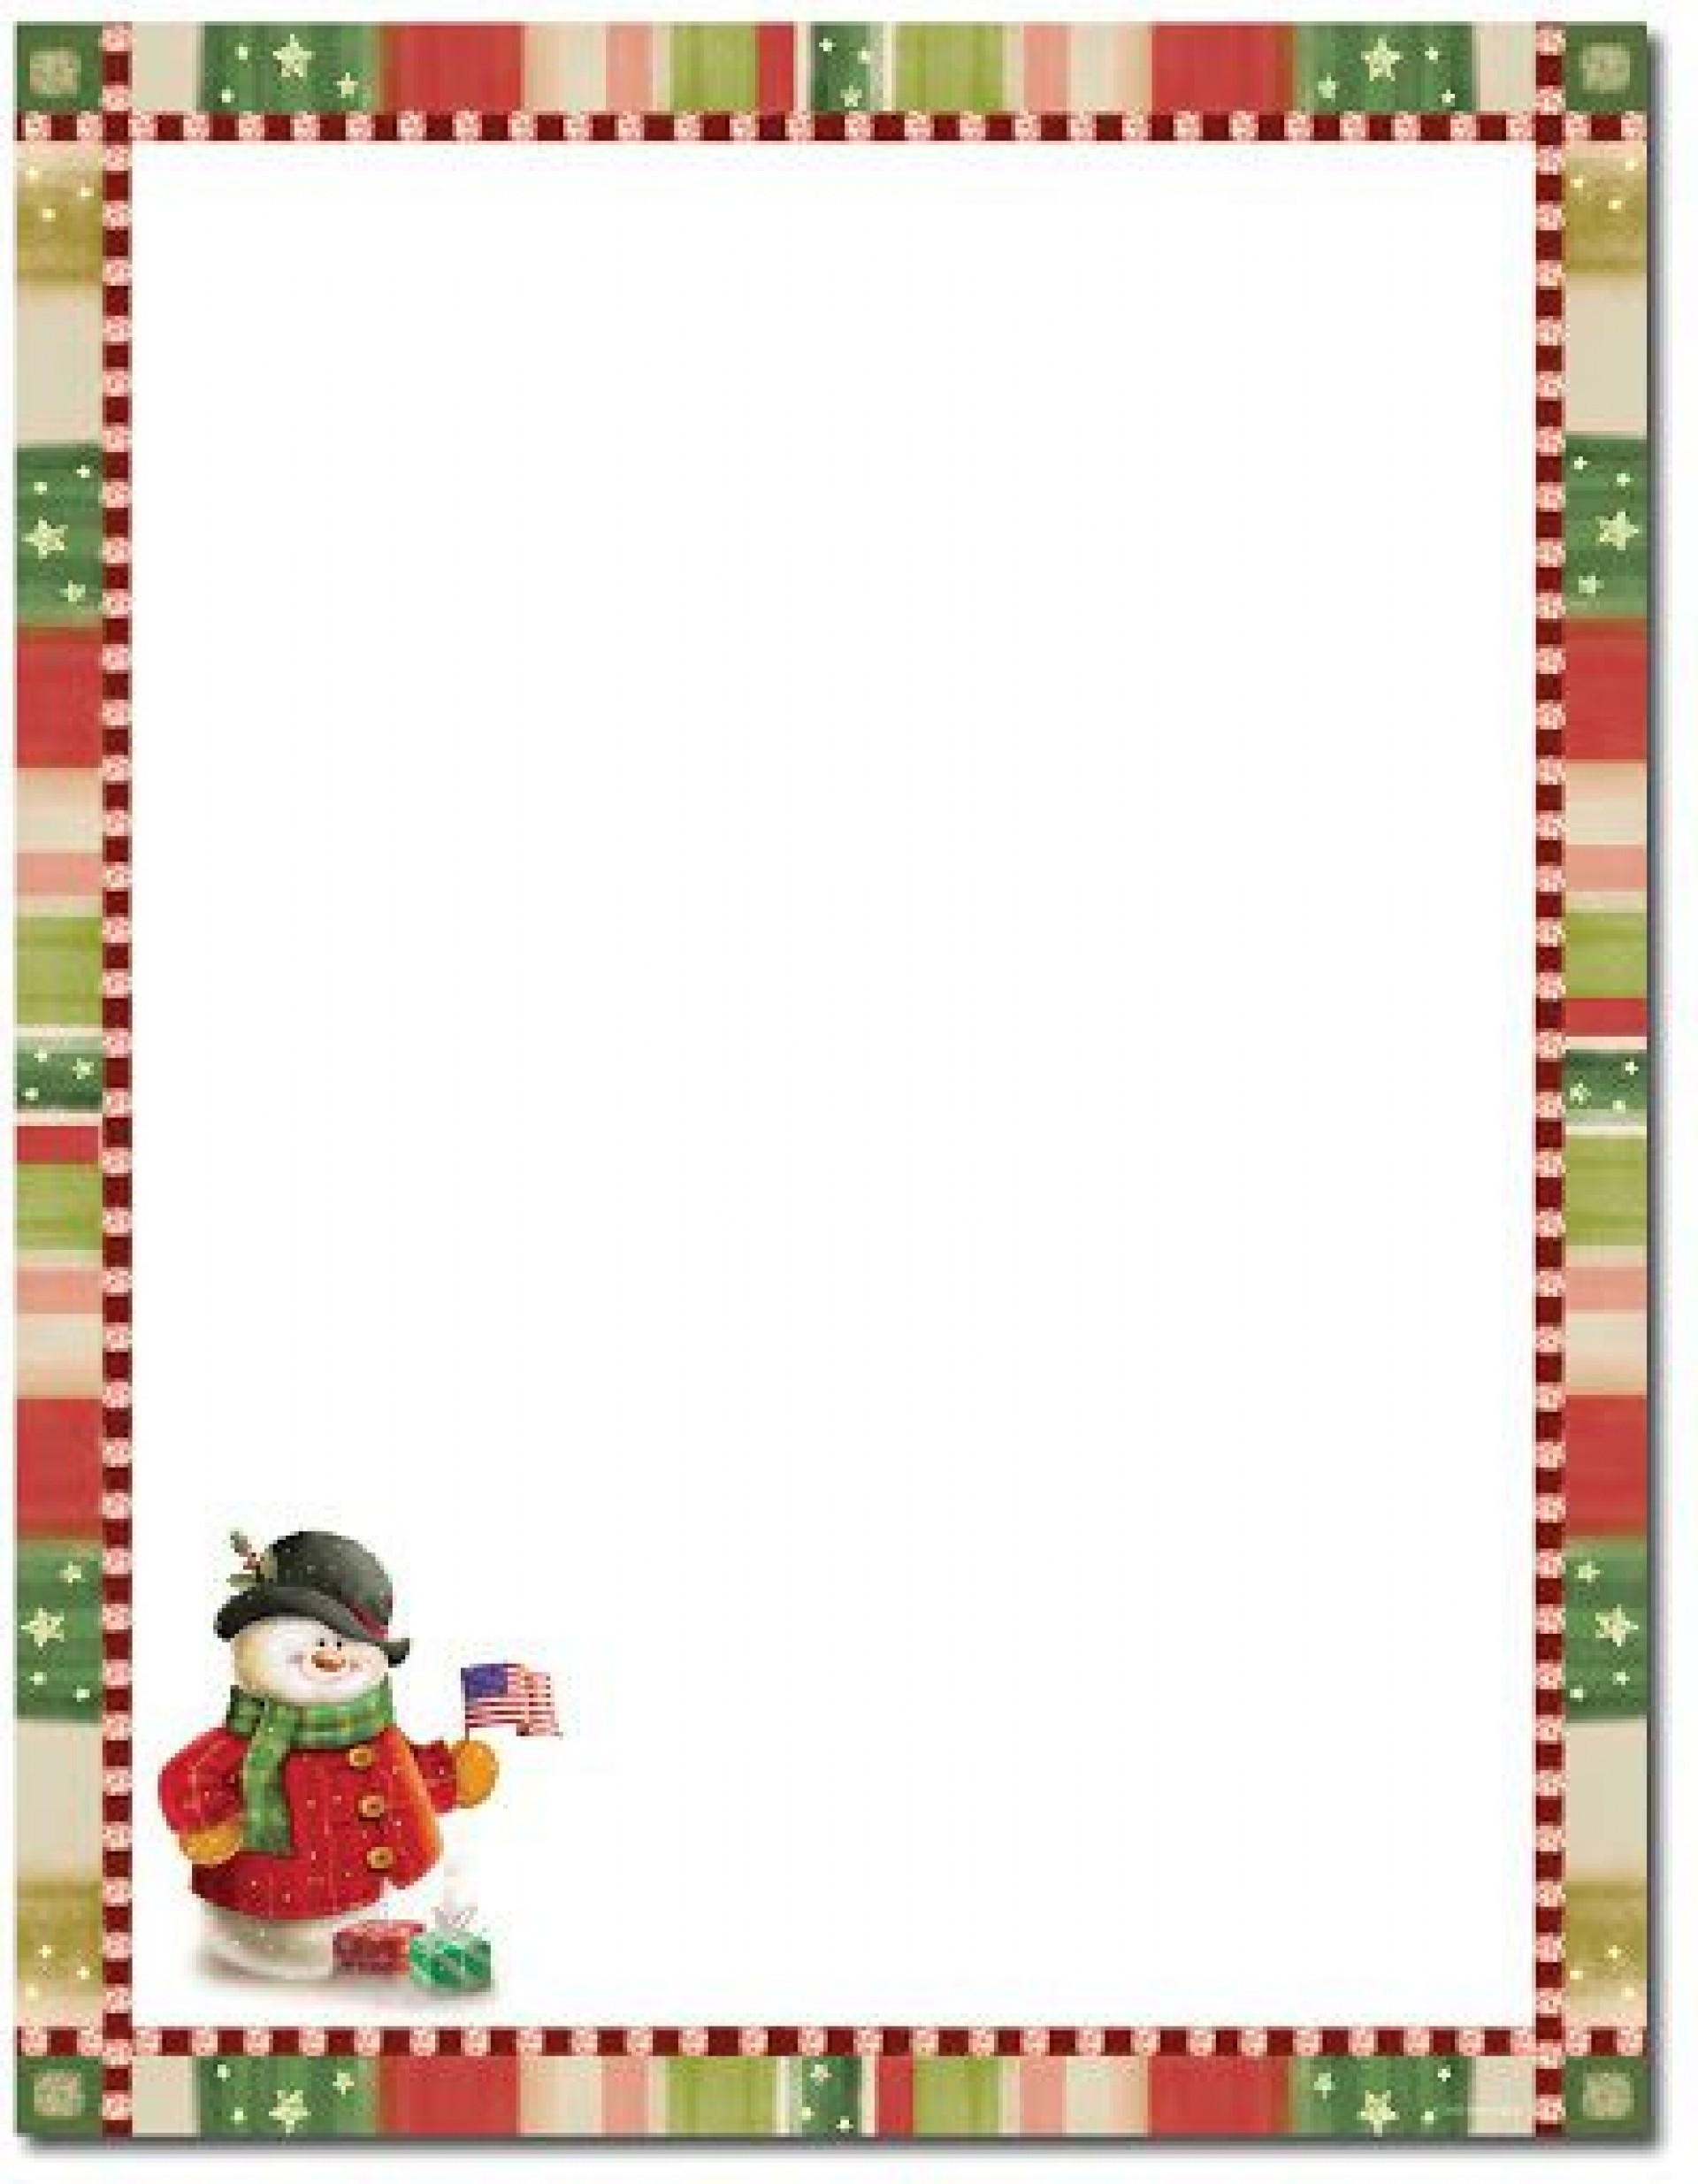 004 Unforgettable Christma Stationery Template Word Free Inspiration  Religiou For Downloadable1920